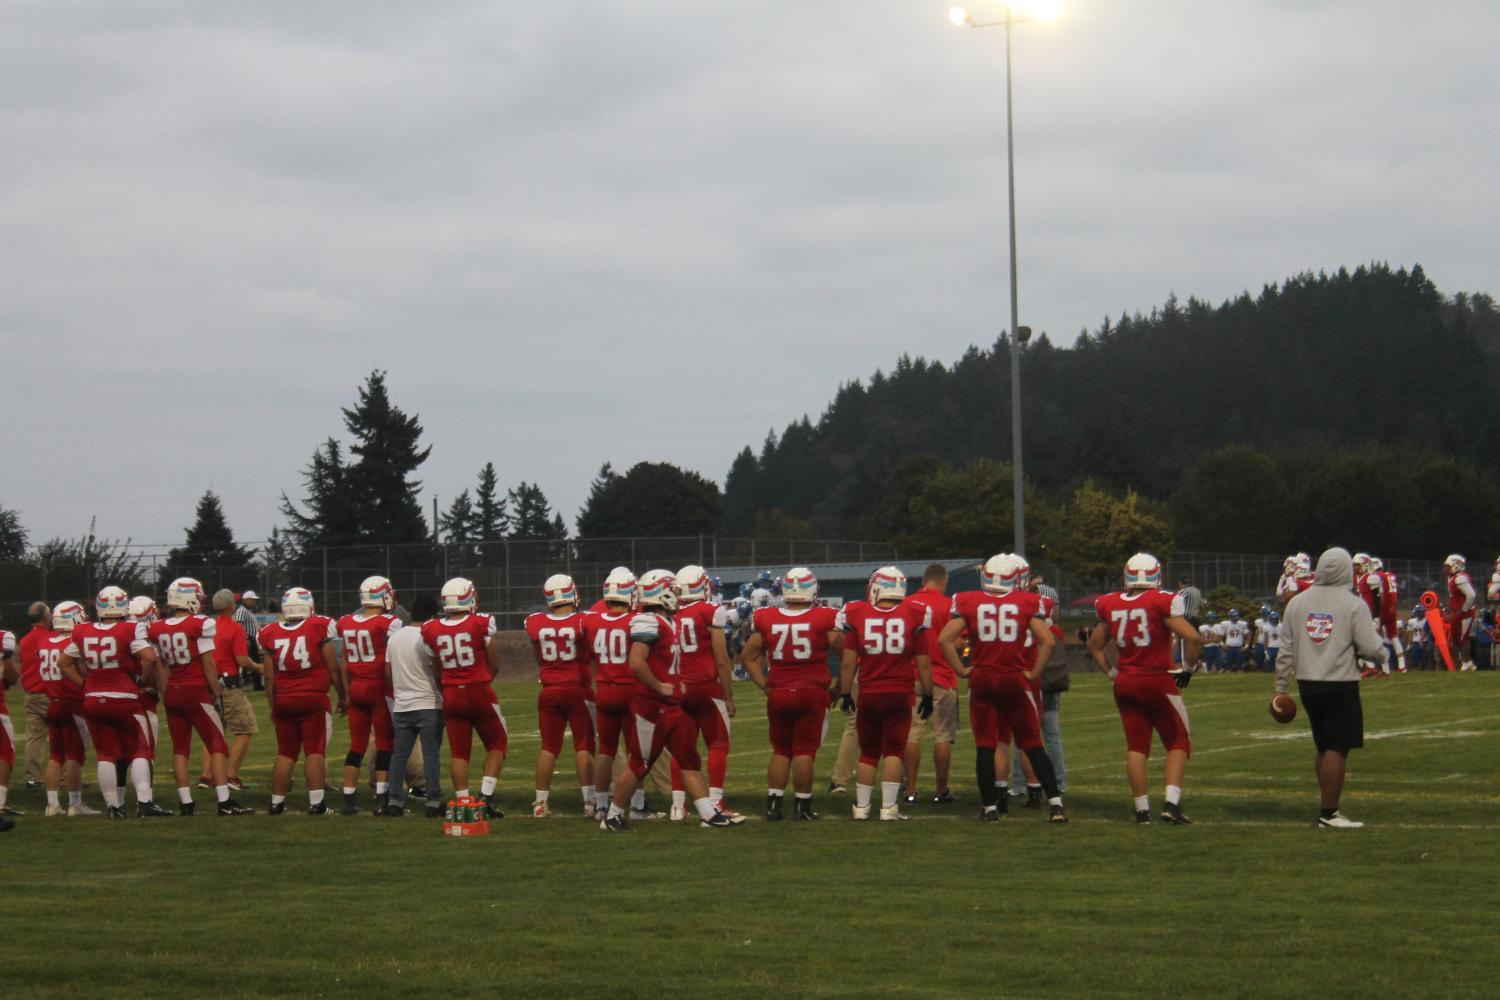 Several Eagle football players look on anxiously as the team plays last week against Newberg in a 56-27 loss to the Tigers.